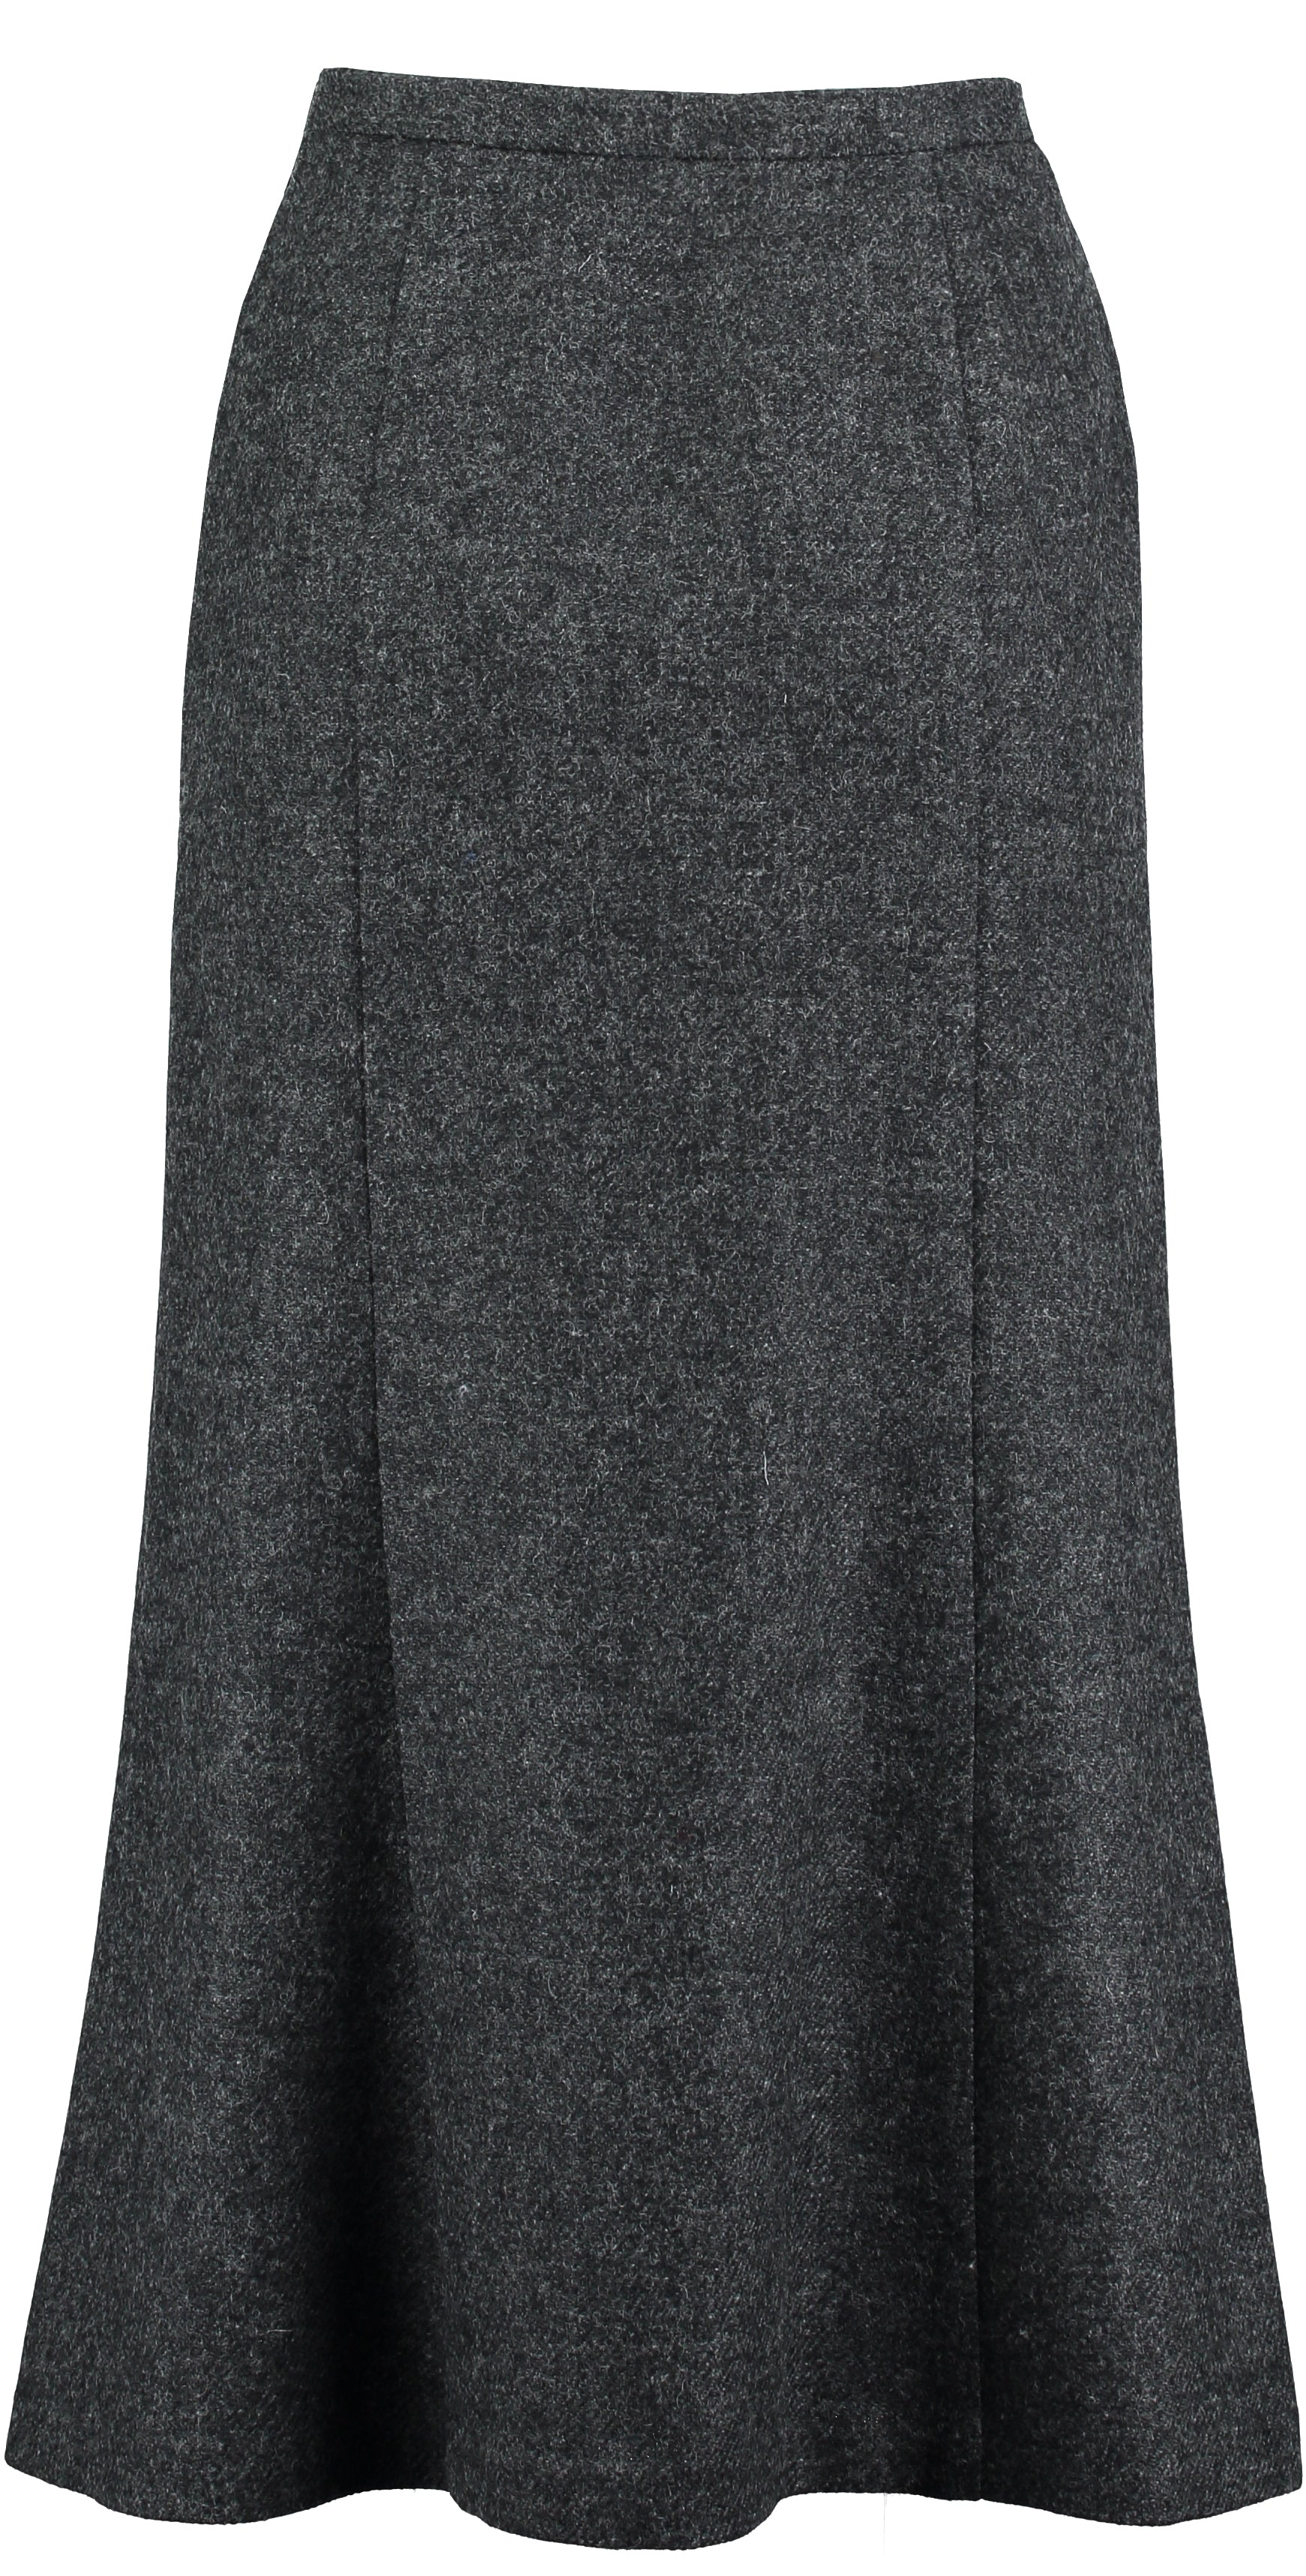 Landmark Long Panel Tweed Skirt for Ladies in Charcoal